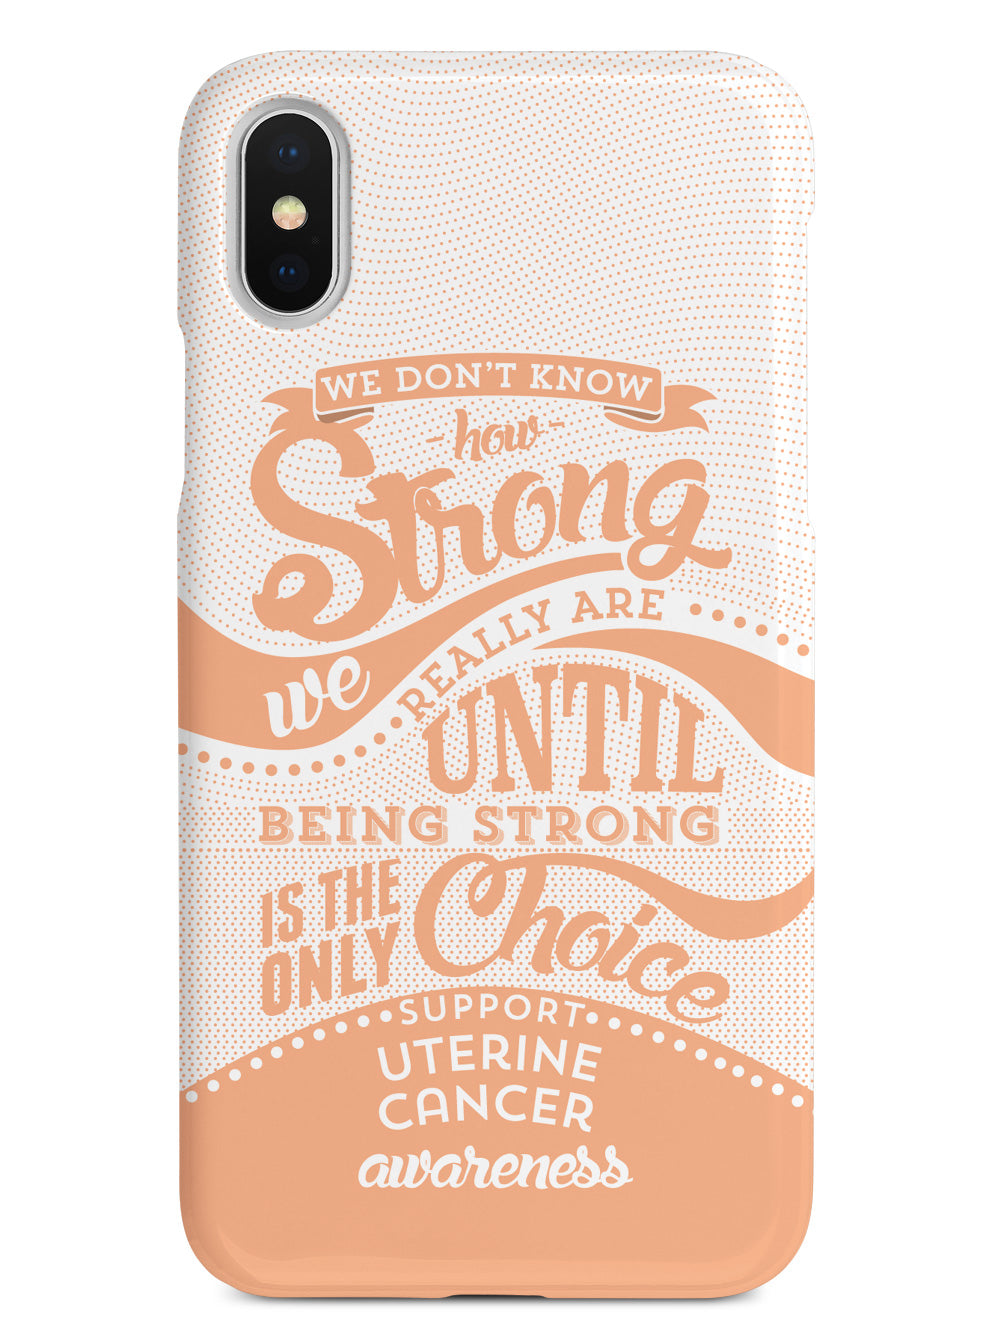 How Strong - Uterine Cancer Awareness Case